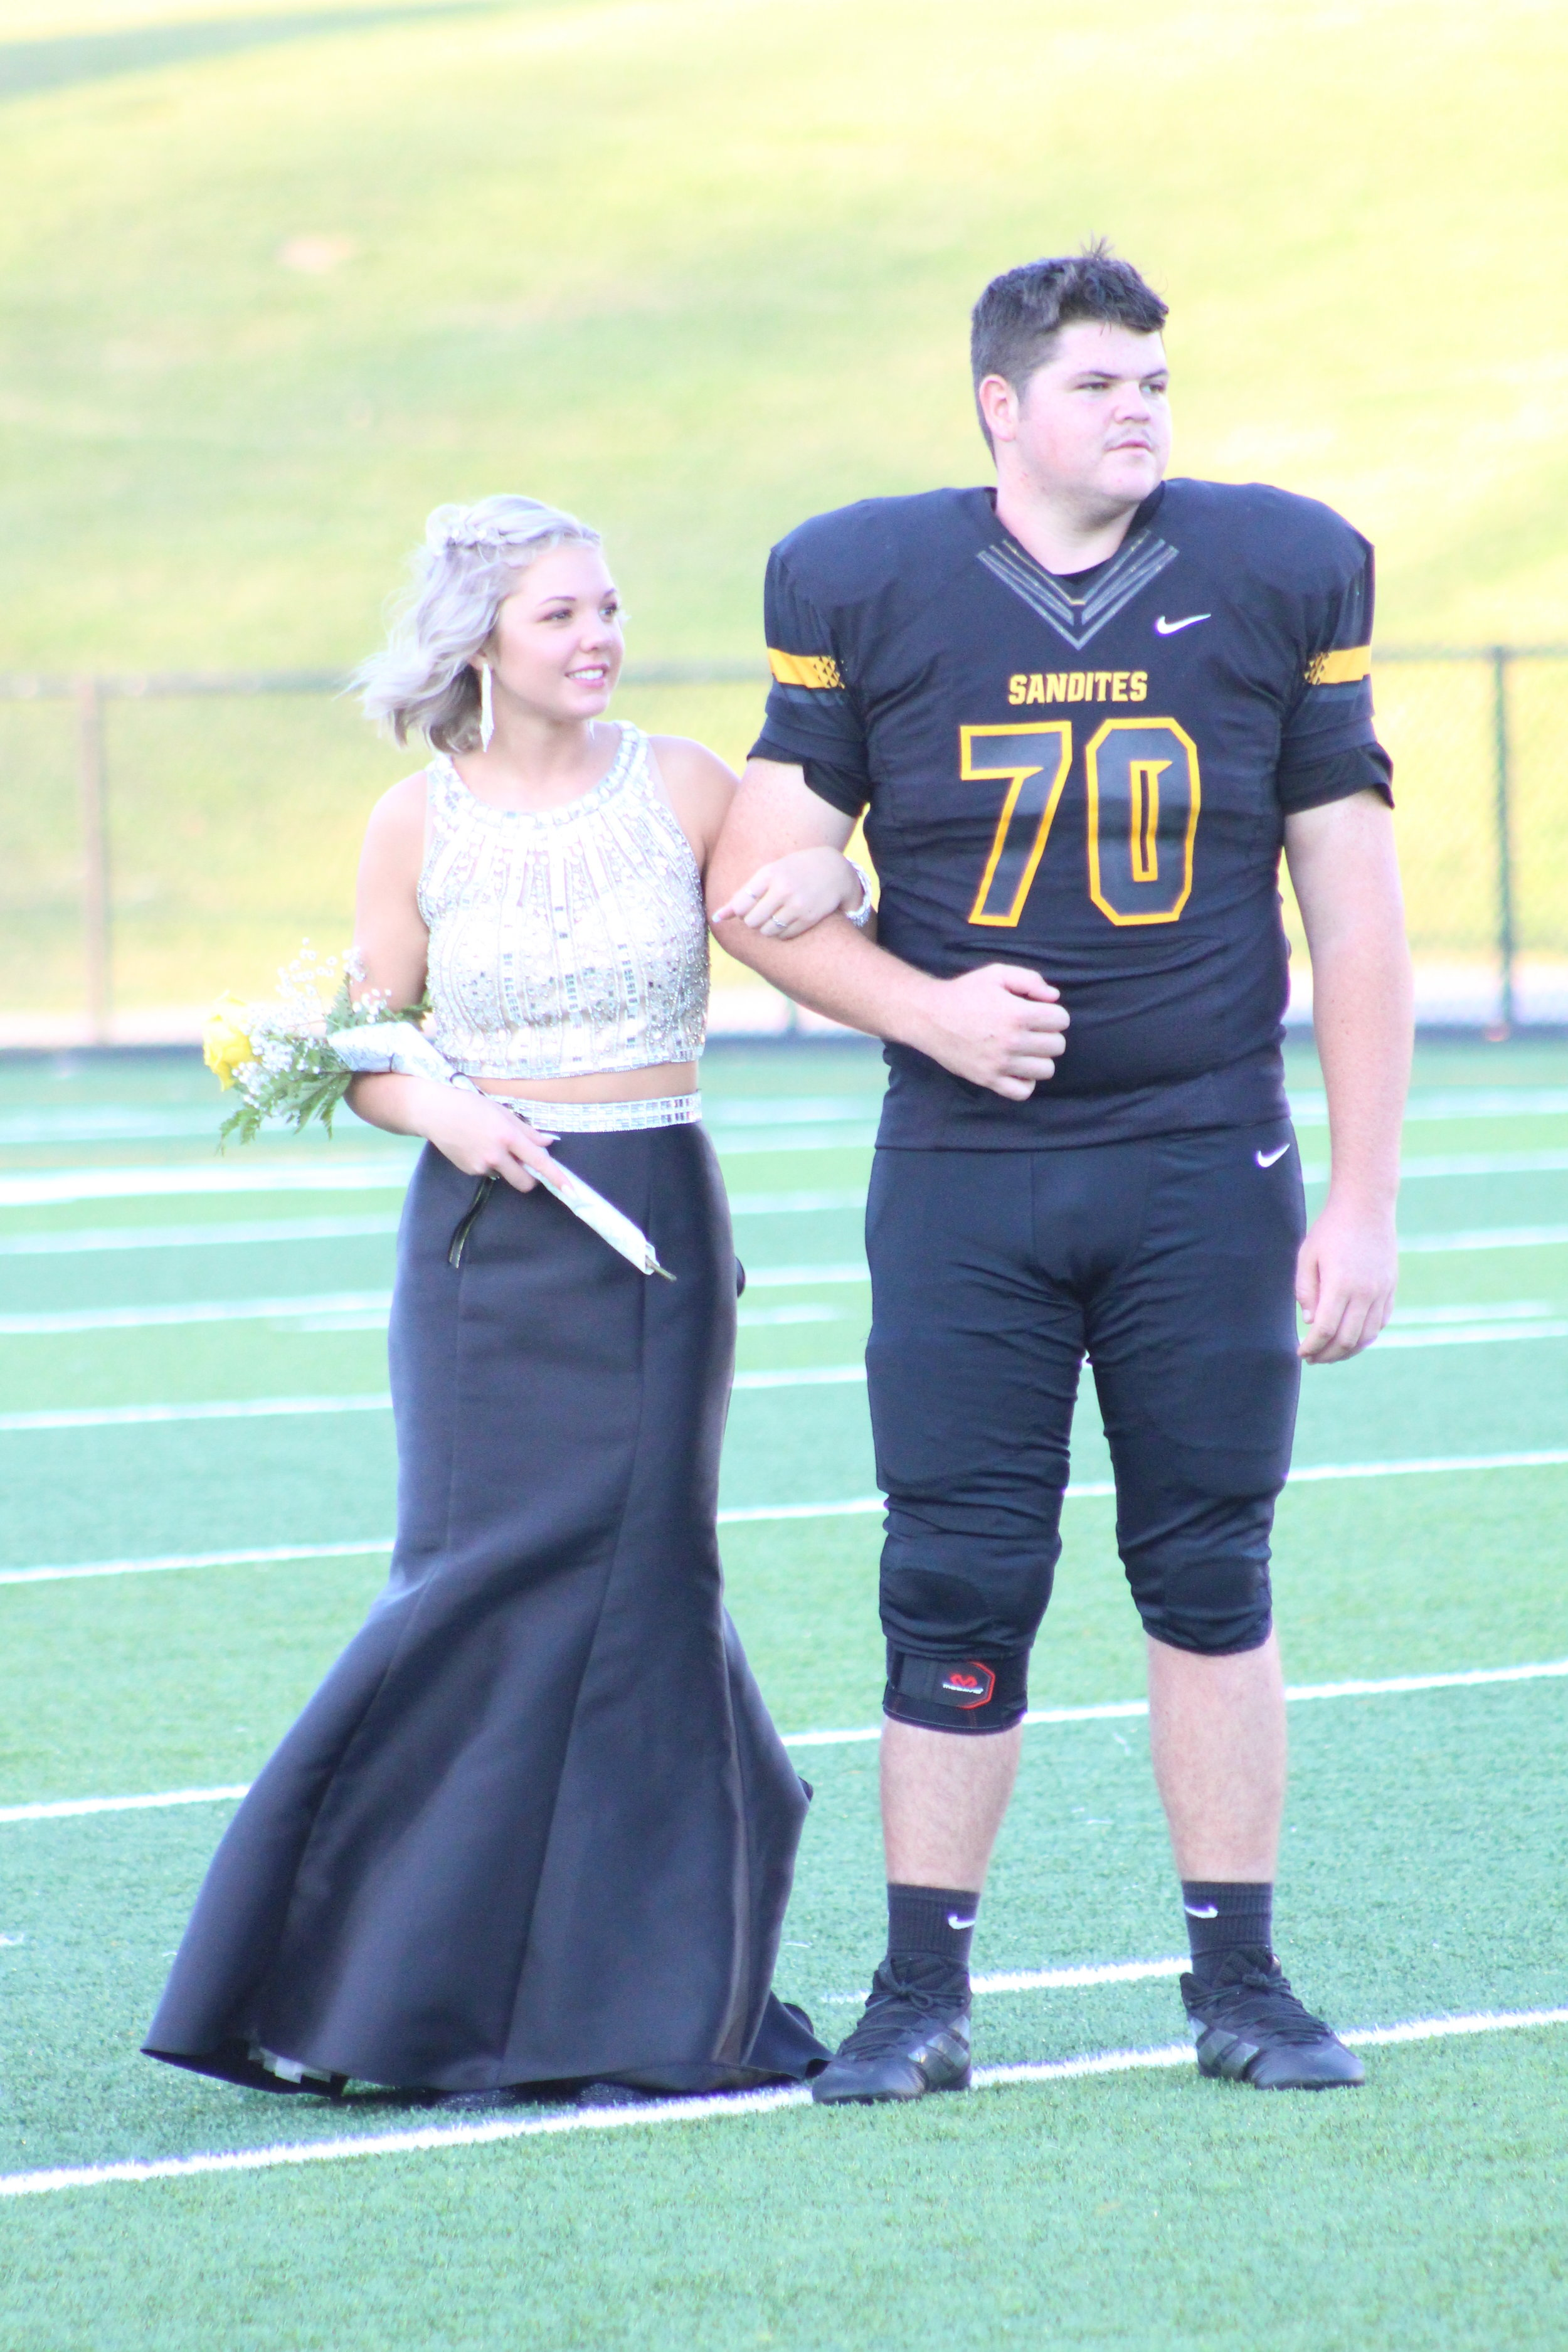 Kendal Pearson, escorted by Nicolas Hancock. Pearson is the daughter of Tim and Keri Pearson and is a three-year varsity Dance Team member. Hancock is the son of Danny and Jennifer Hancock and is a three-year varsity offensive lineman.